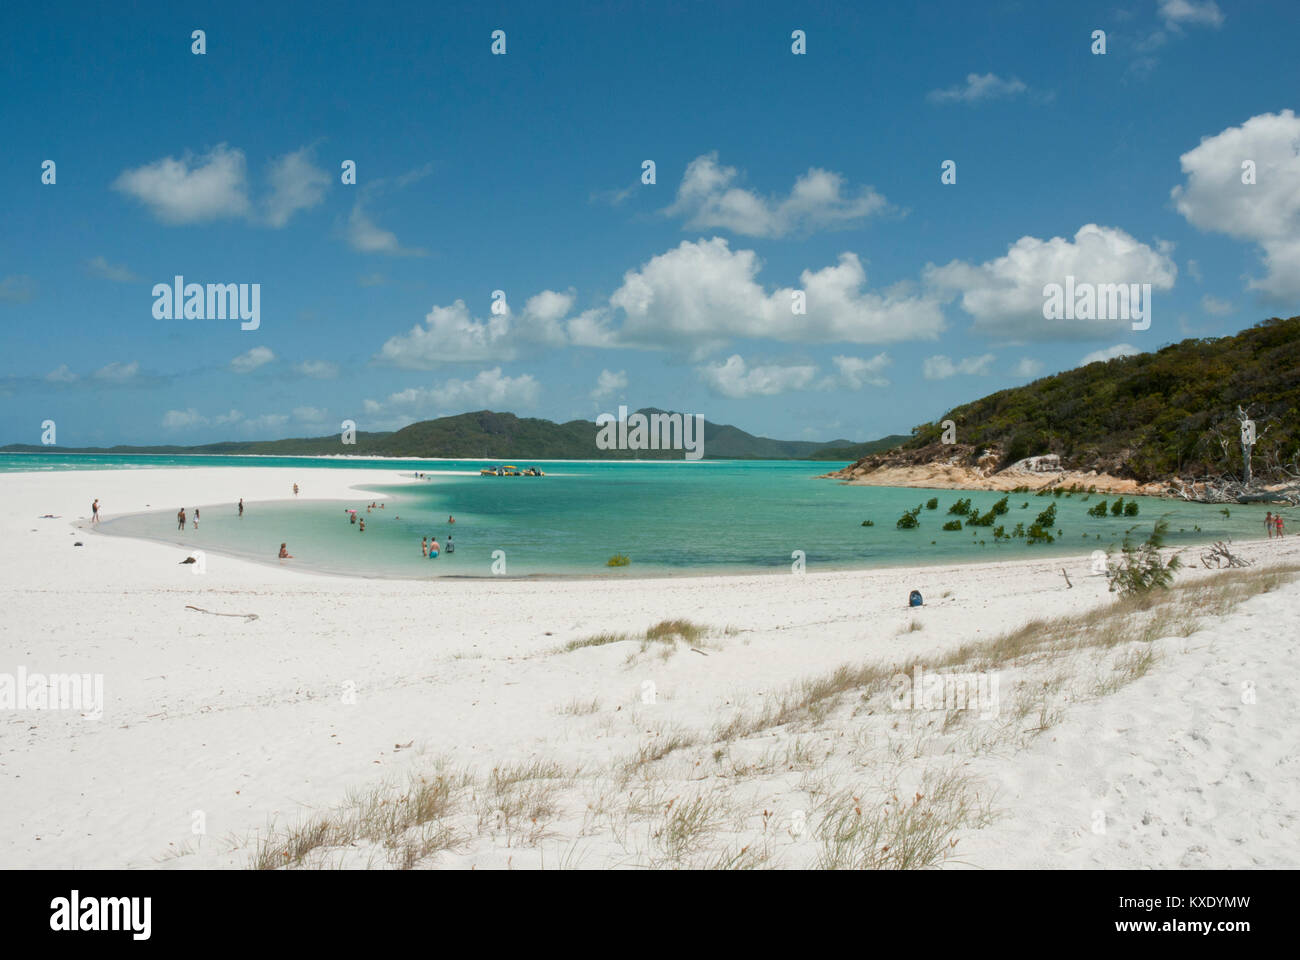 Pristine white sands of Whitehaven Beach, Whitsundays, Queensland with amazing emerald sea, Coral Sea, blue skies - Stock Image